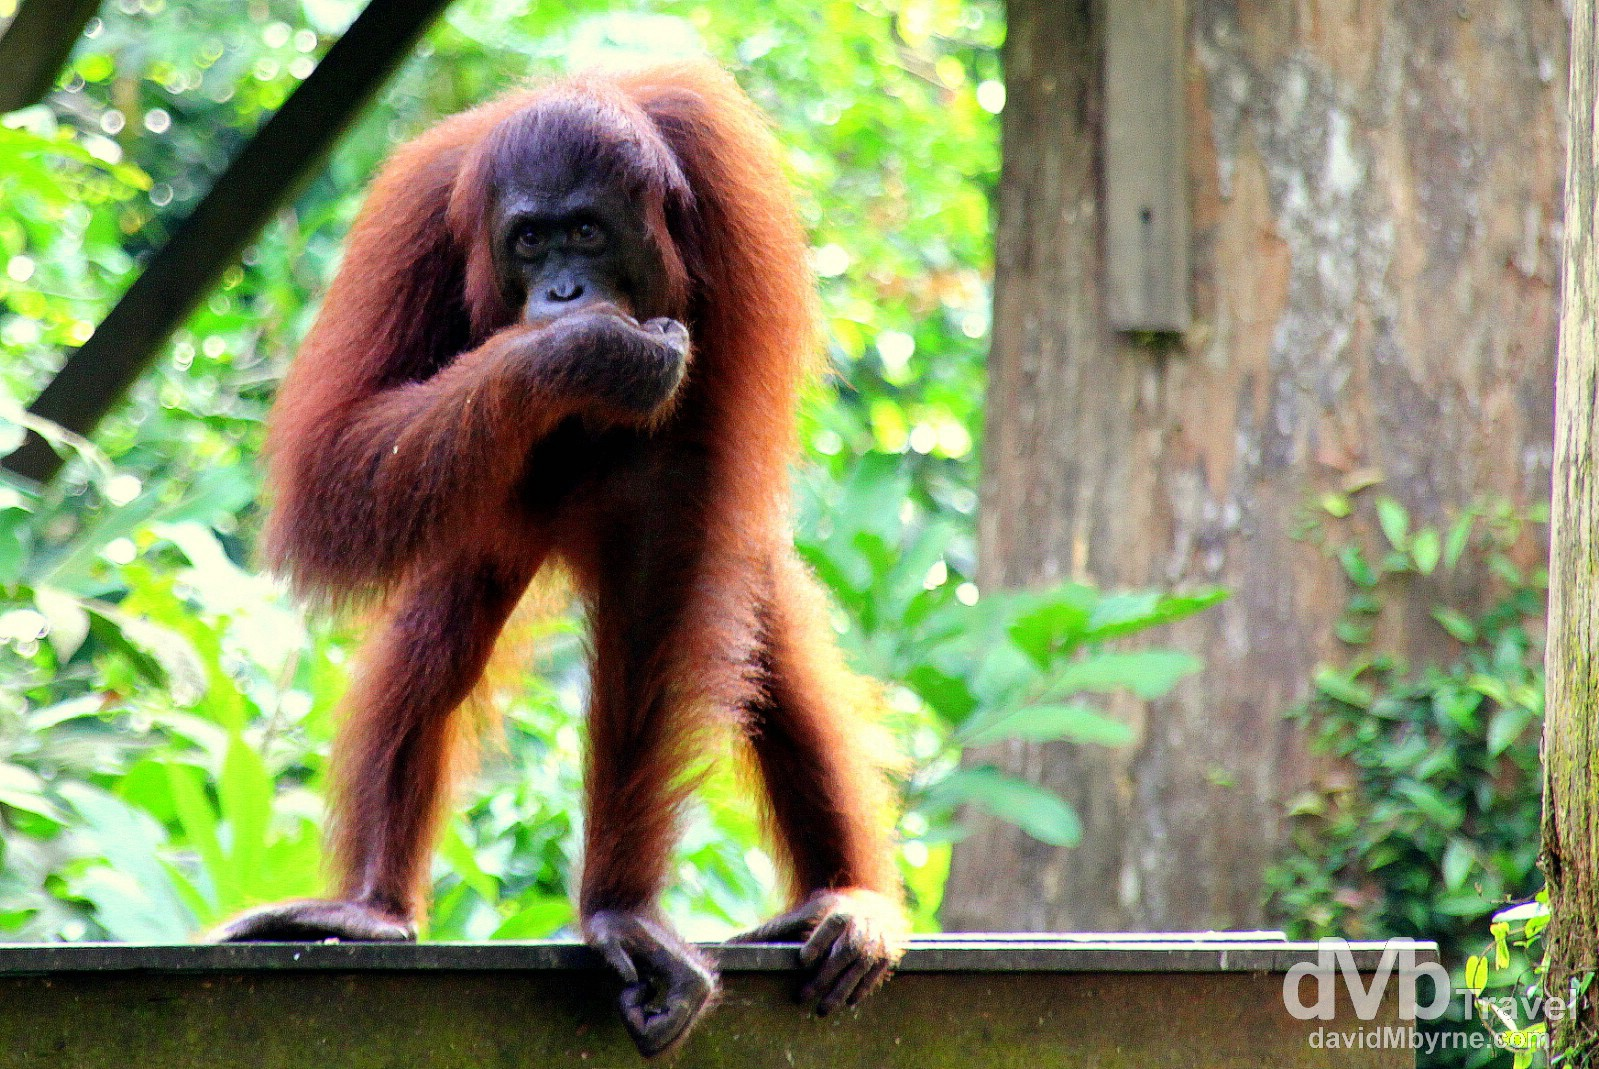 A resident at the Sepilok Orangutan Rehabilitation Centre, Sabah, Malaysian Borneo. June 26th 2012.